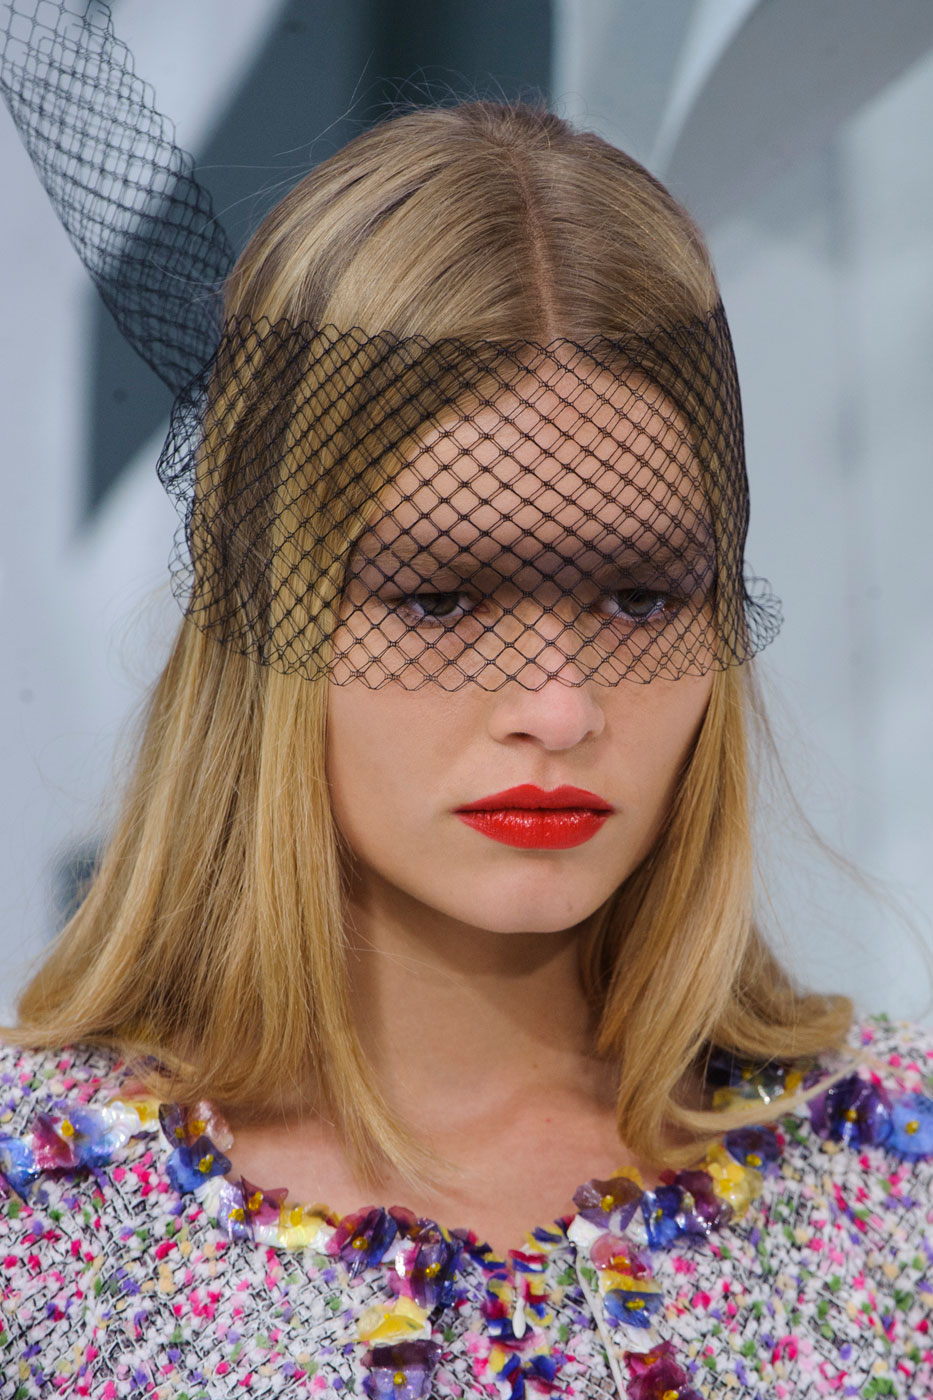 Chanel-fashion-runway-show-close-ups-haute-couture-paris-spring-summer-2015-the-impression-029